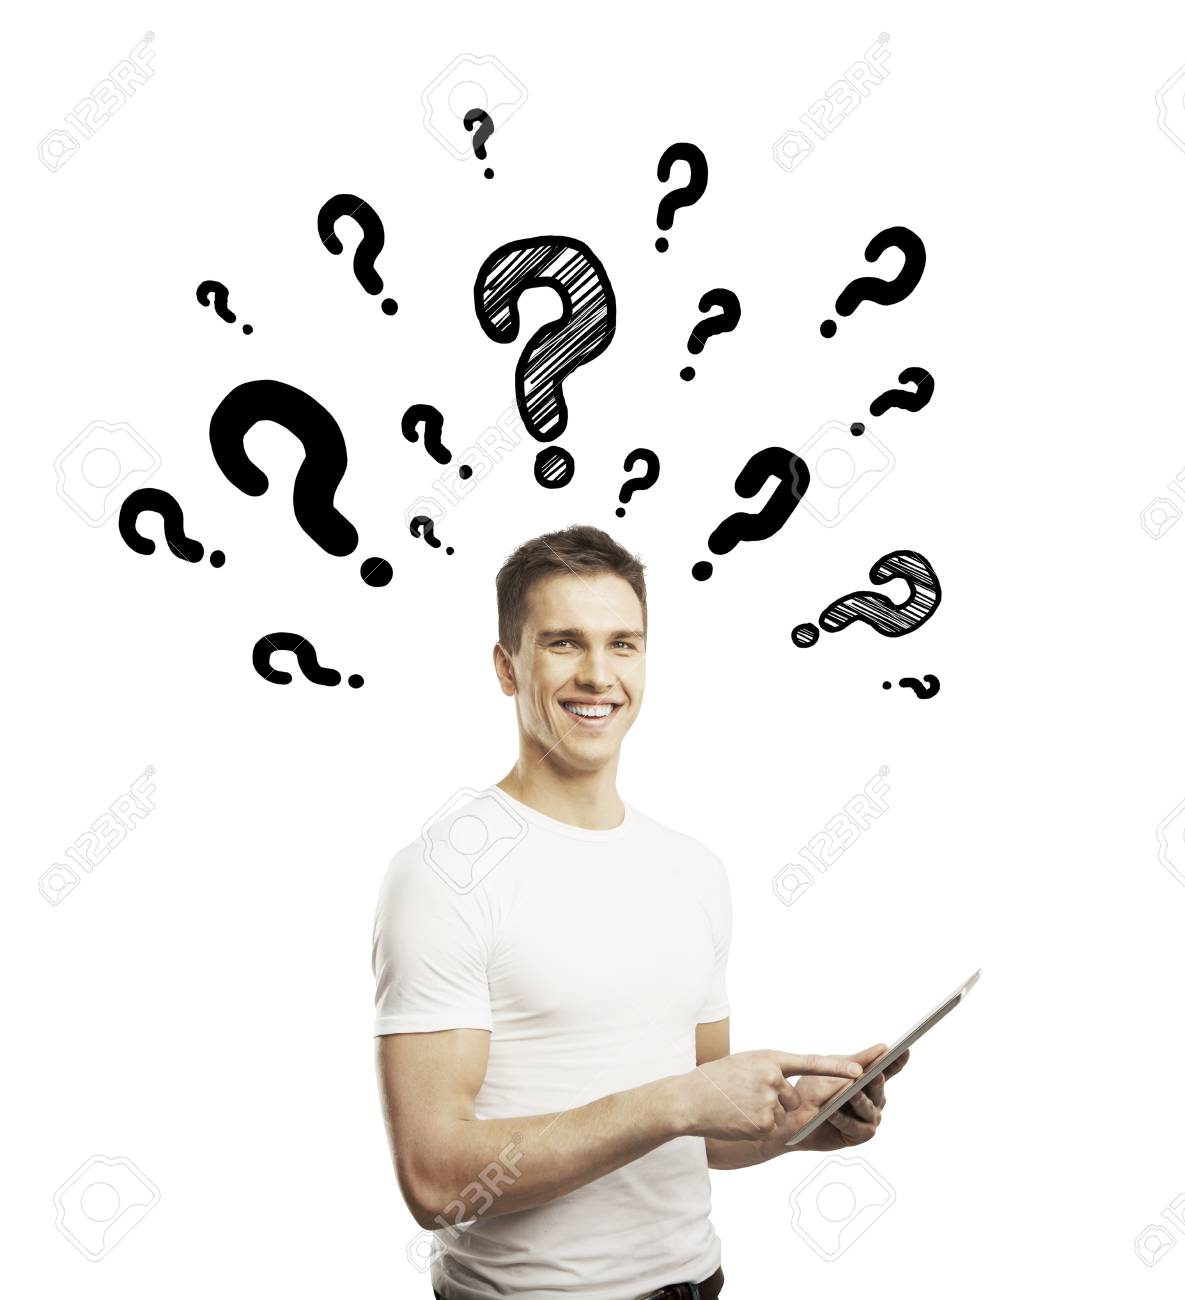 man holding tablet and questions mark Stock Photo - 17250336